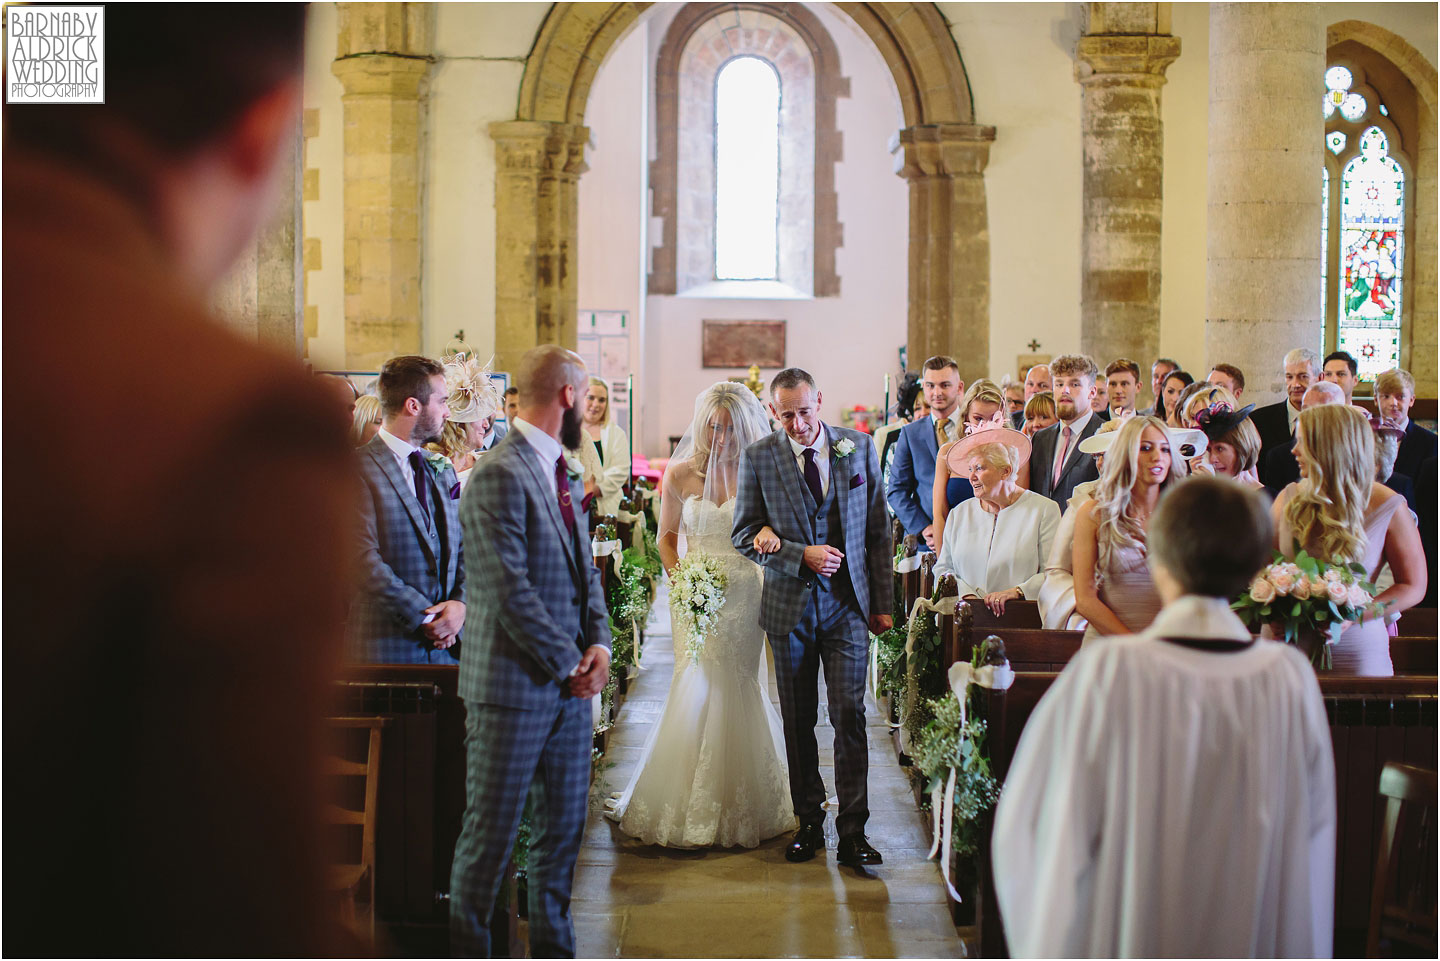 Wedding ceremony at All Saints Church in Bramham